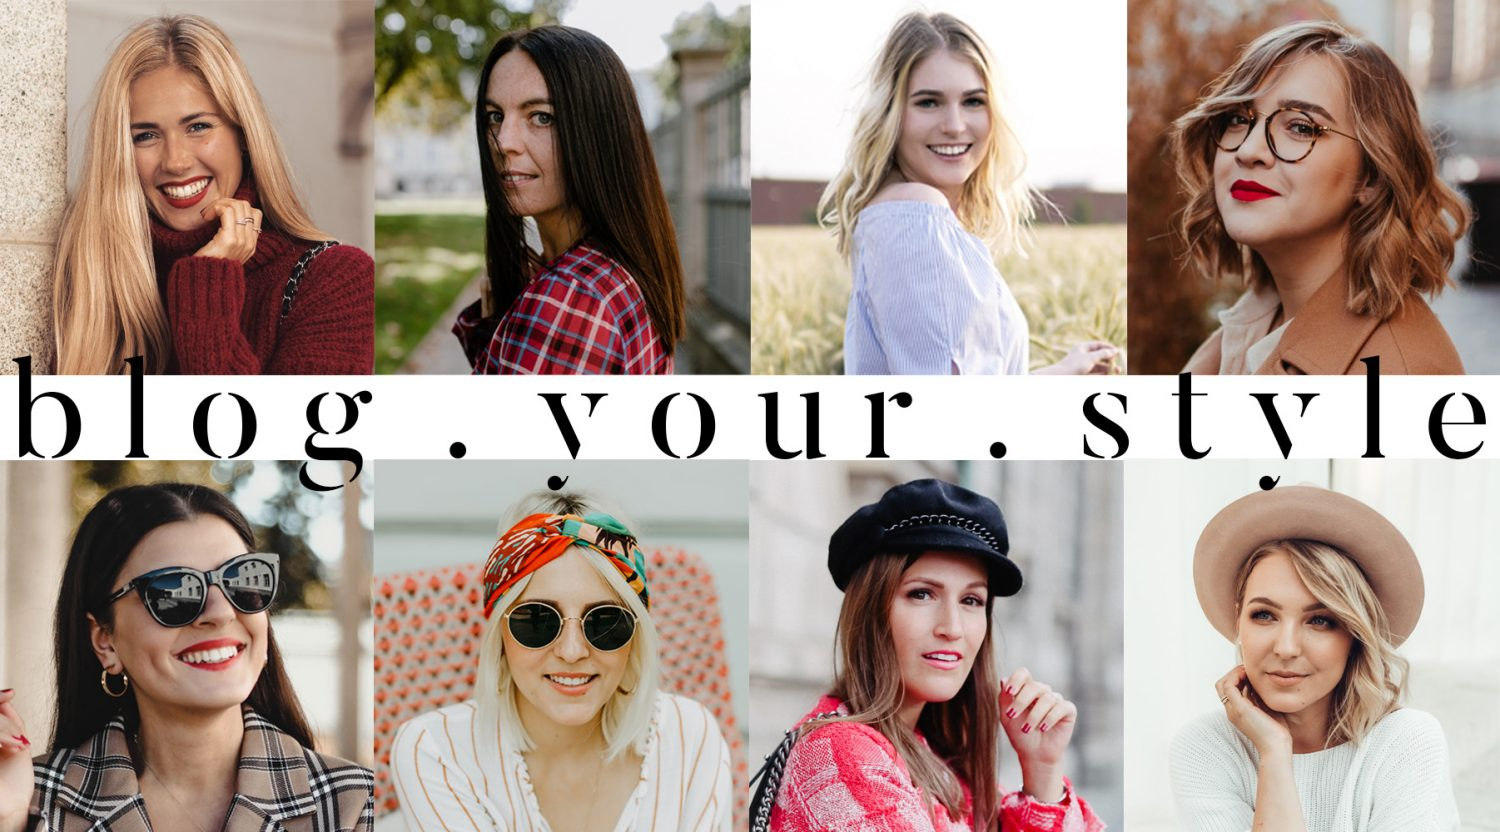 Blog Your Style Leinen Sunglassesandpeonies